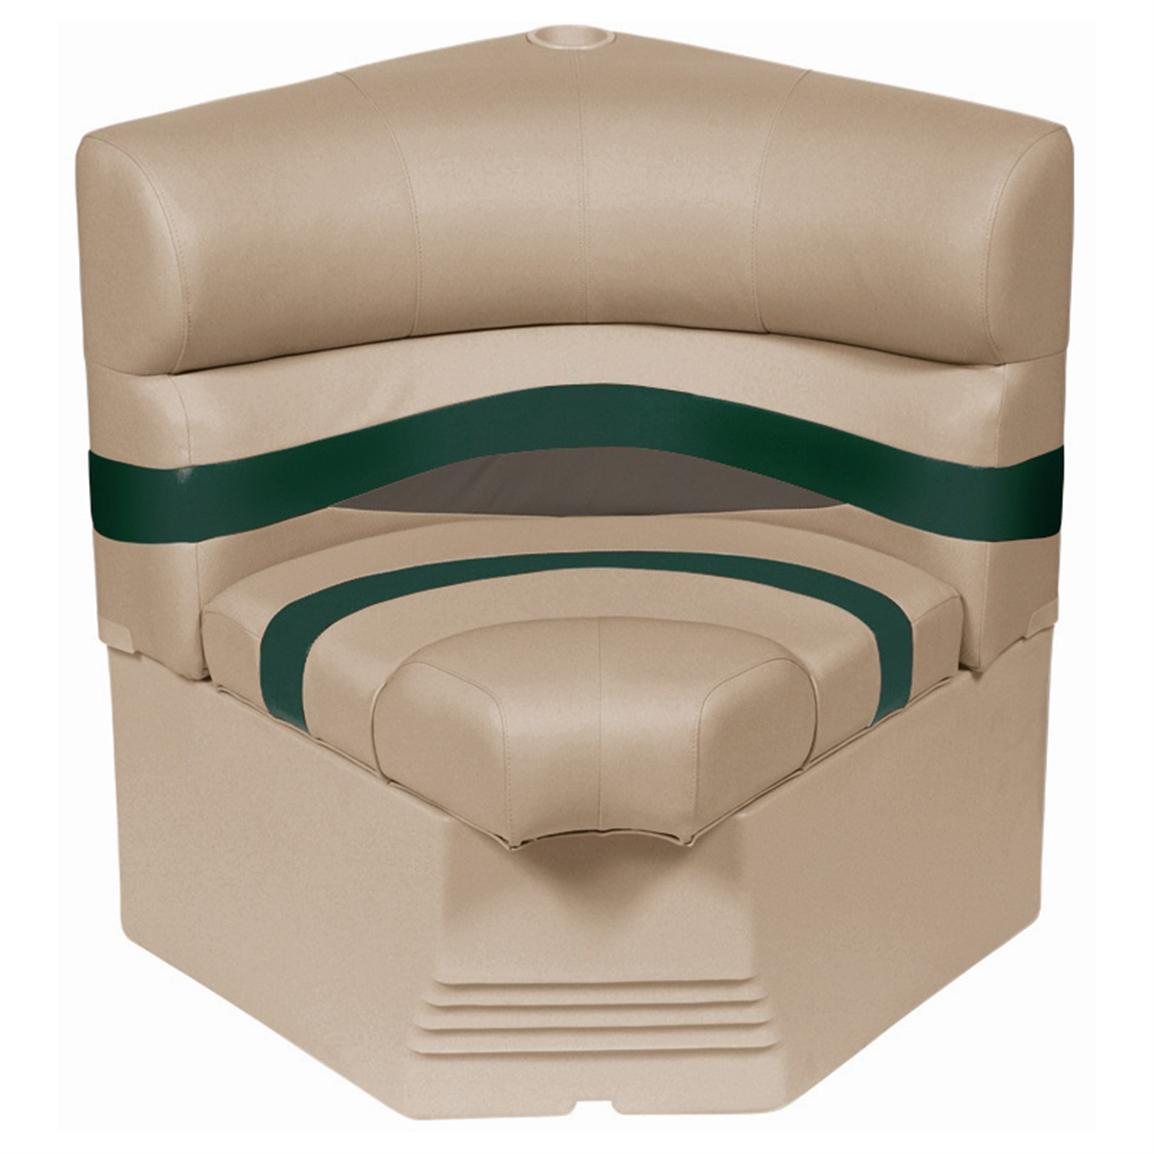 "Wise® Premier Pontoon 25"" Radius Corner Section Seat • Color F - Mocha Java Punch / Evergreen / Rock Salt"